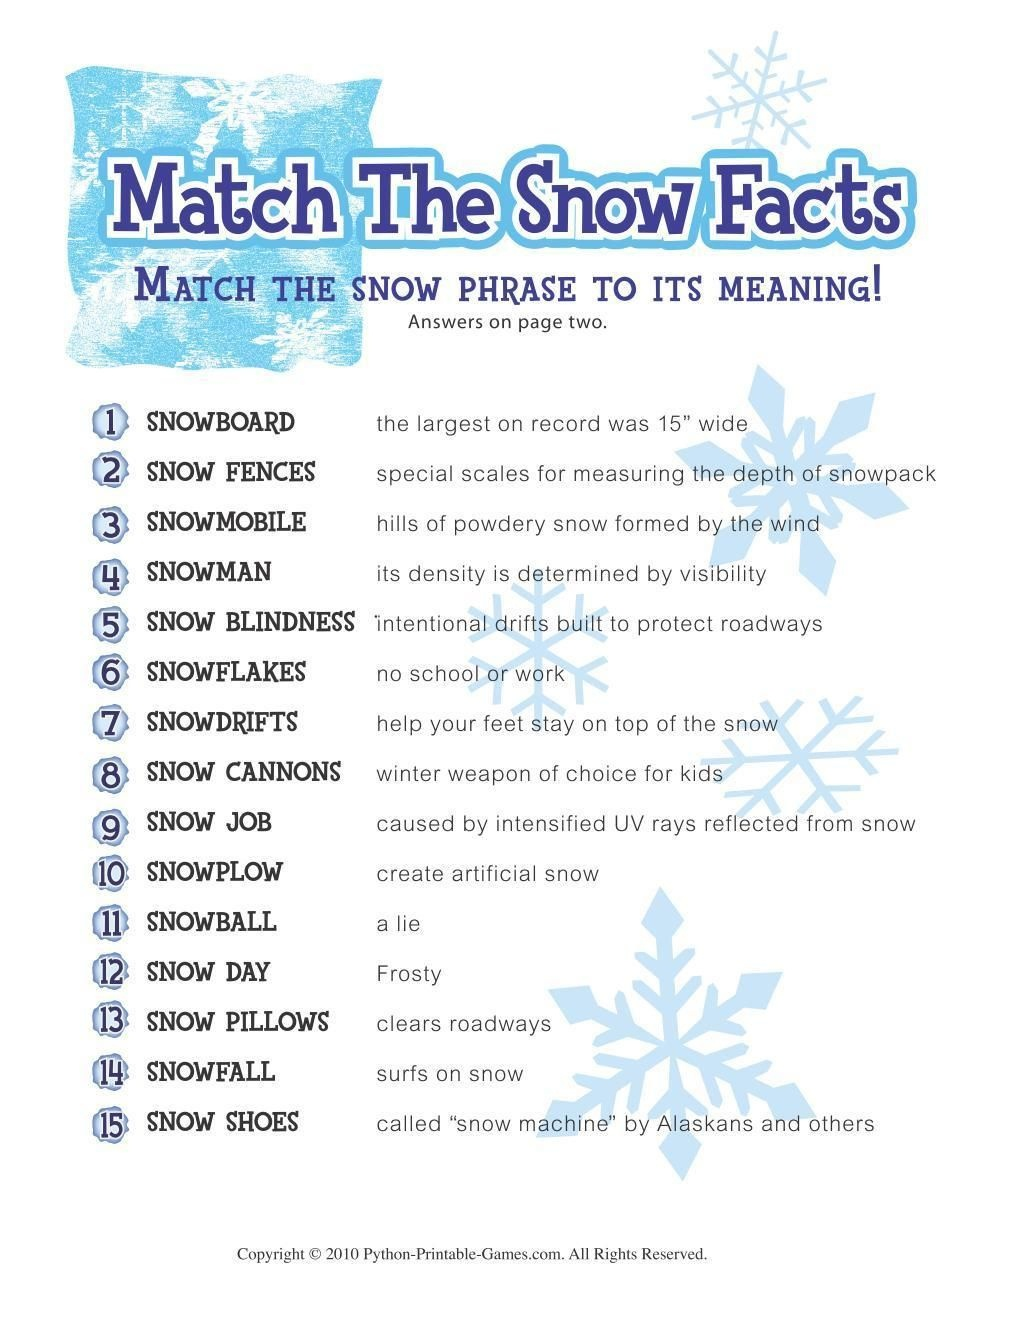 Free Printable Winter Game Match The Snow Facts Download | Winter - Free Printable Women's Party Games